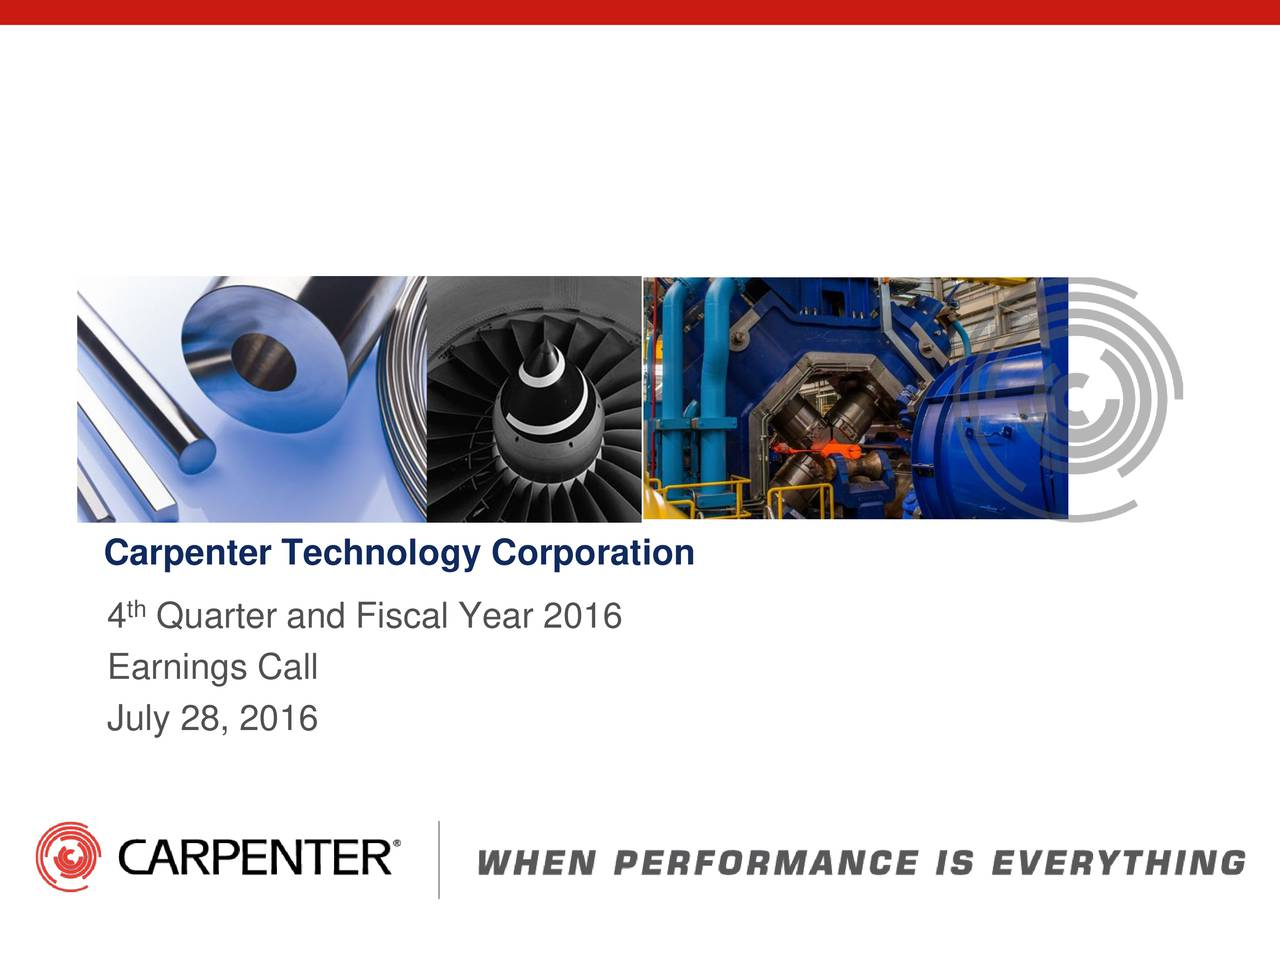 4 Quarter and Fiscal Year 2016 Earnings Call July 28, 2016